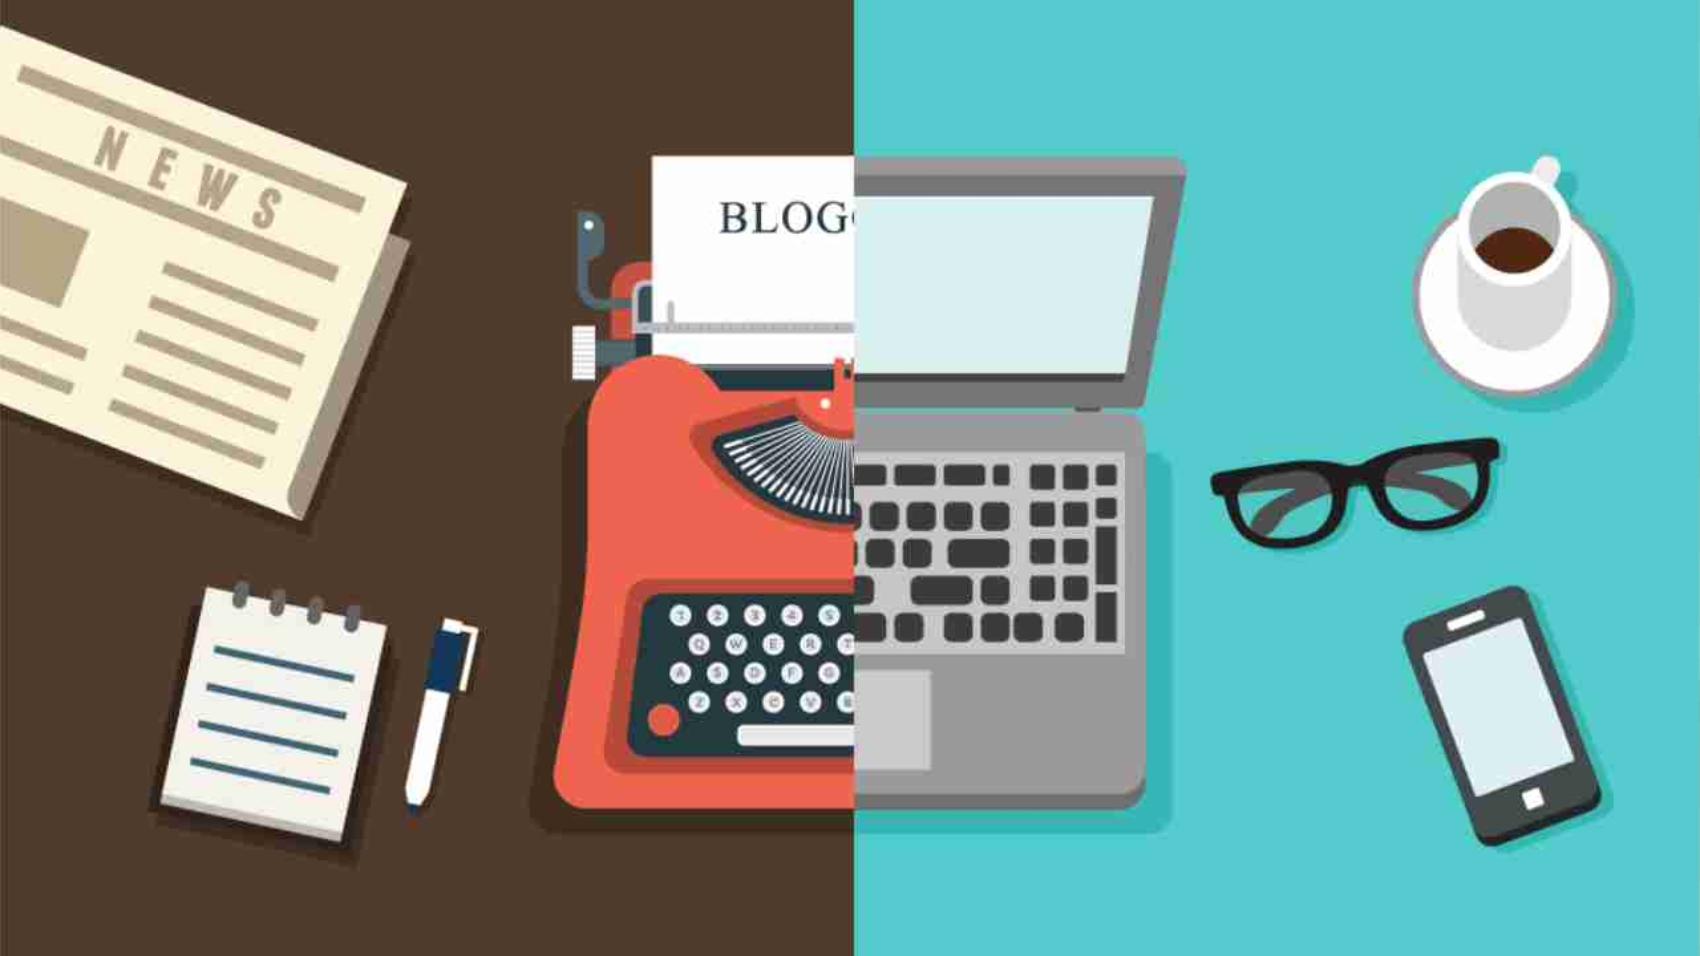 blogging - old and new